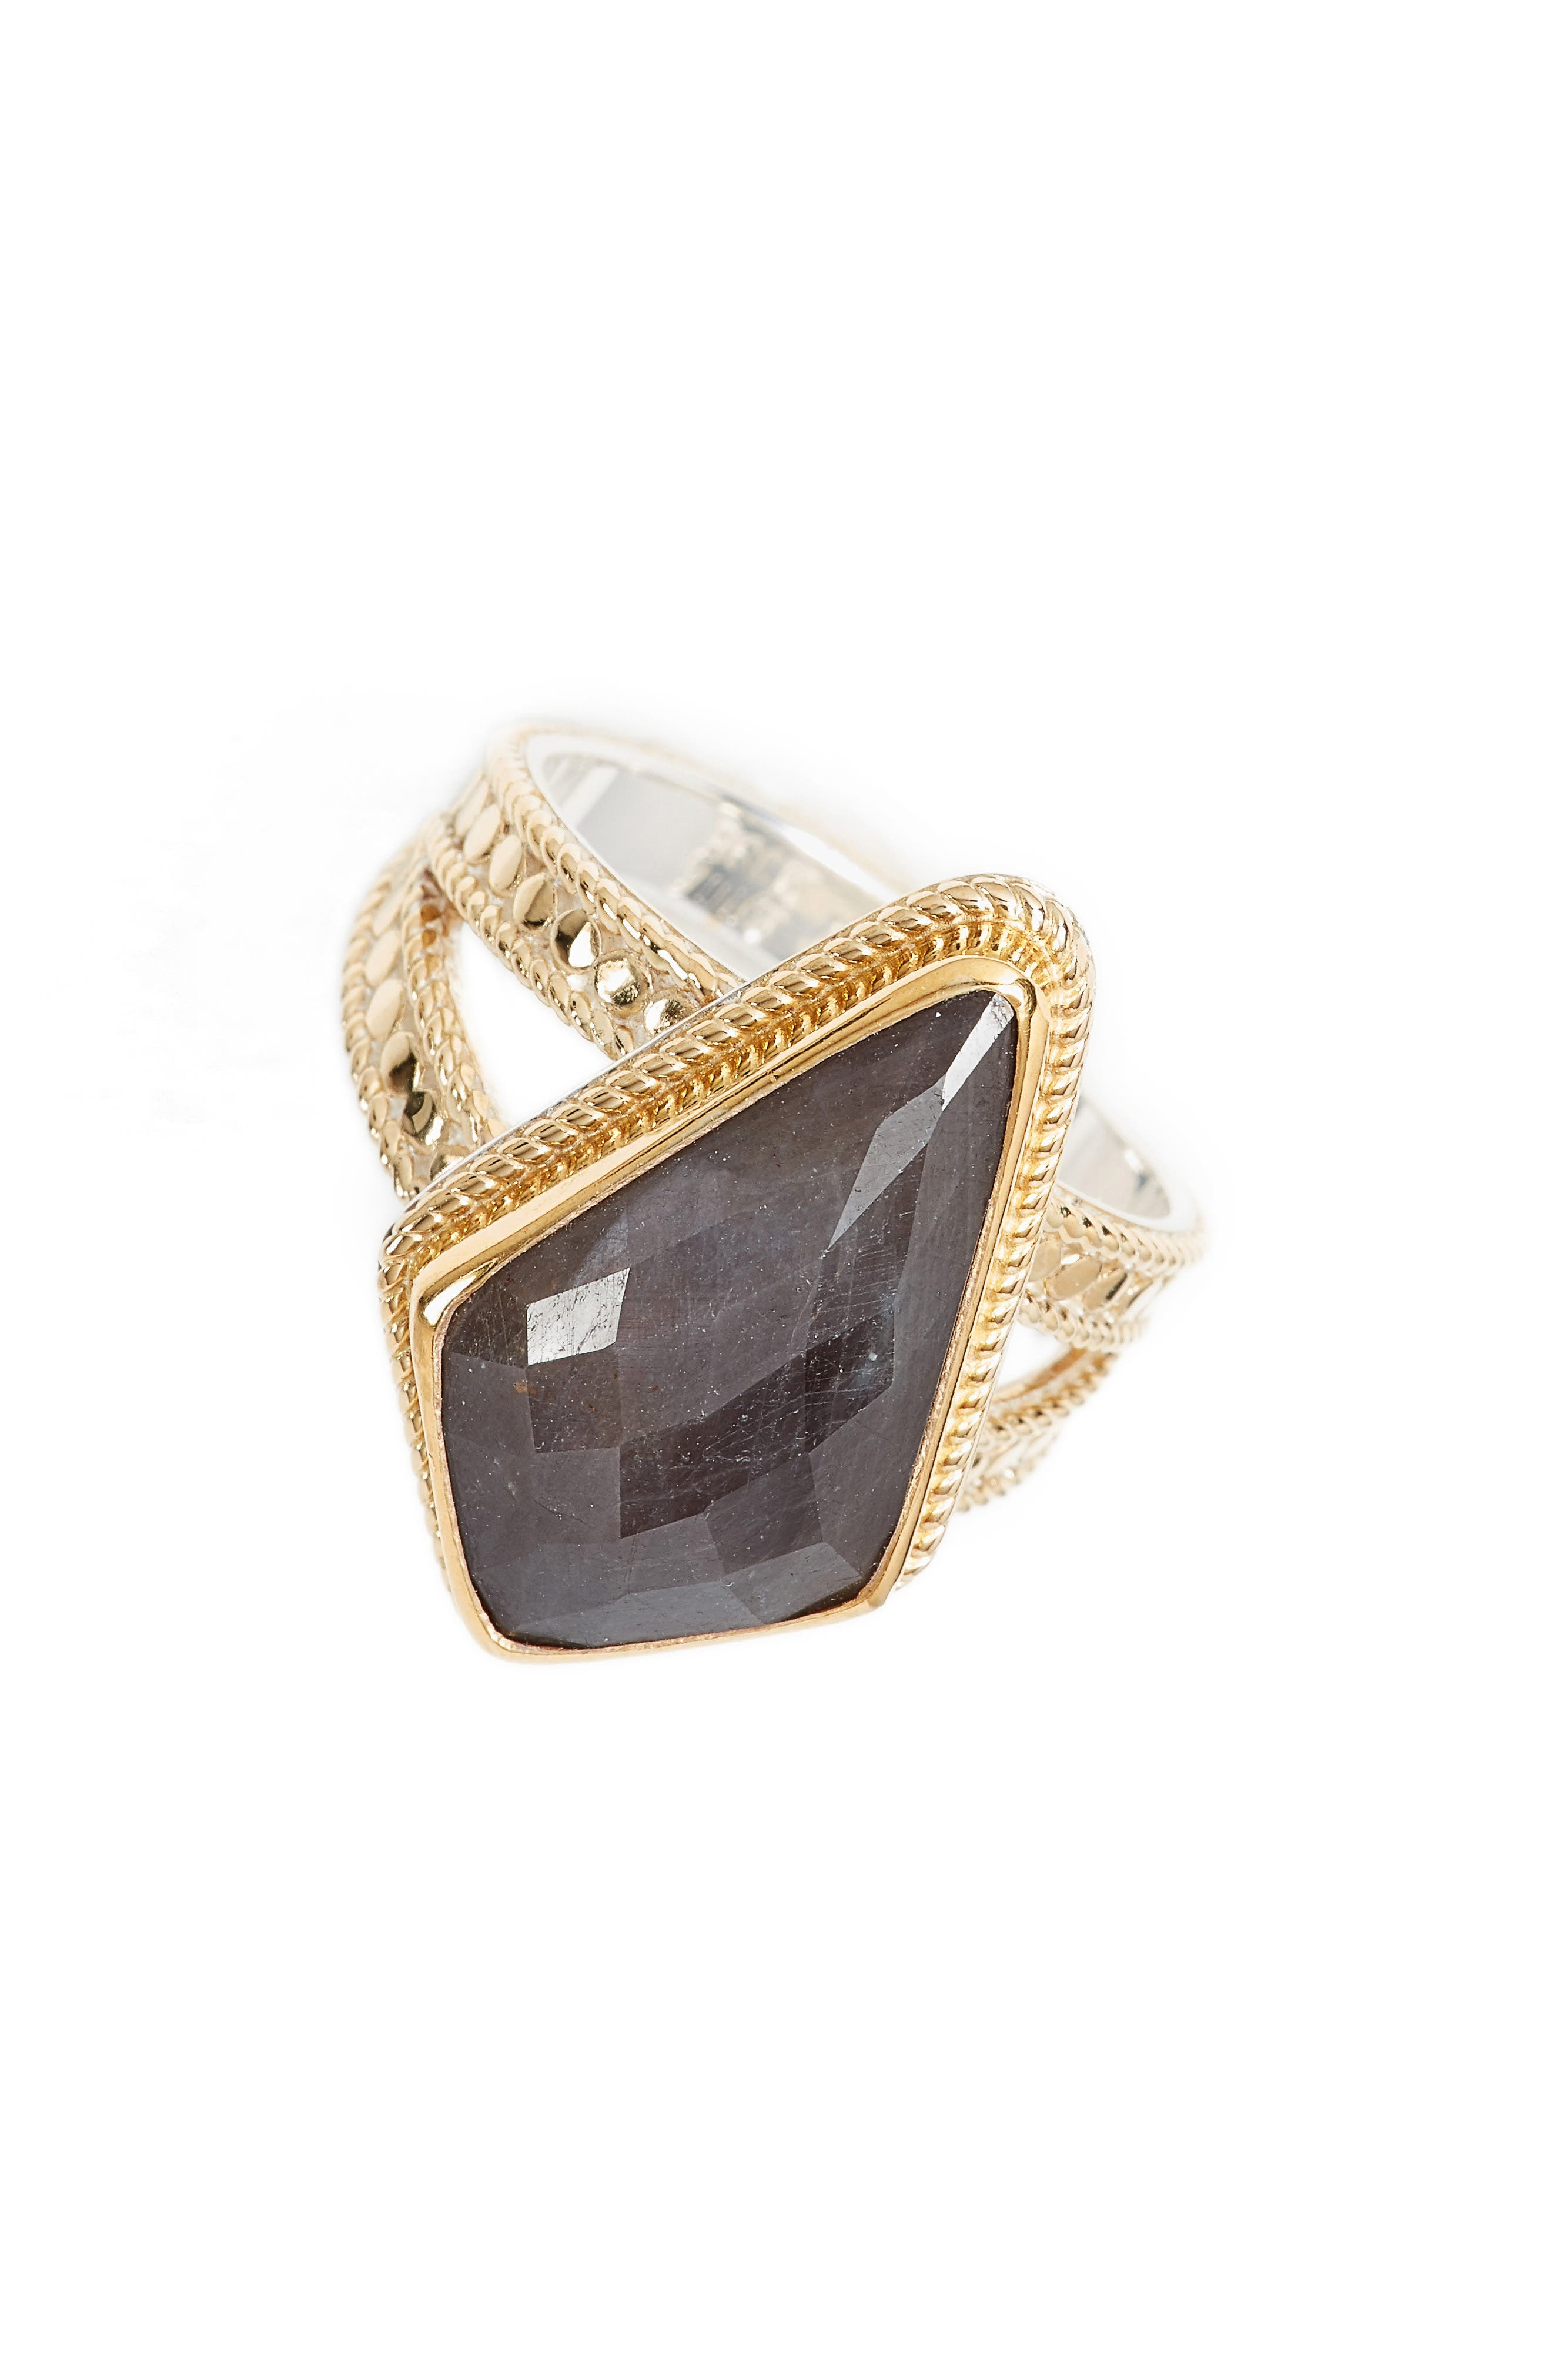 Grey Sapphire Kite Ring,                         Main,                         color, Gold/ Silver/ Grey Sapphire